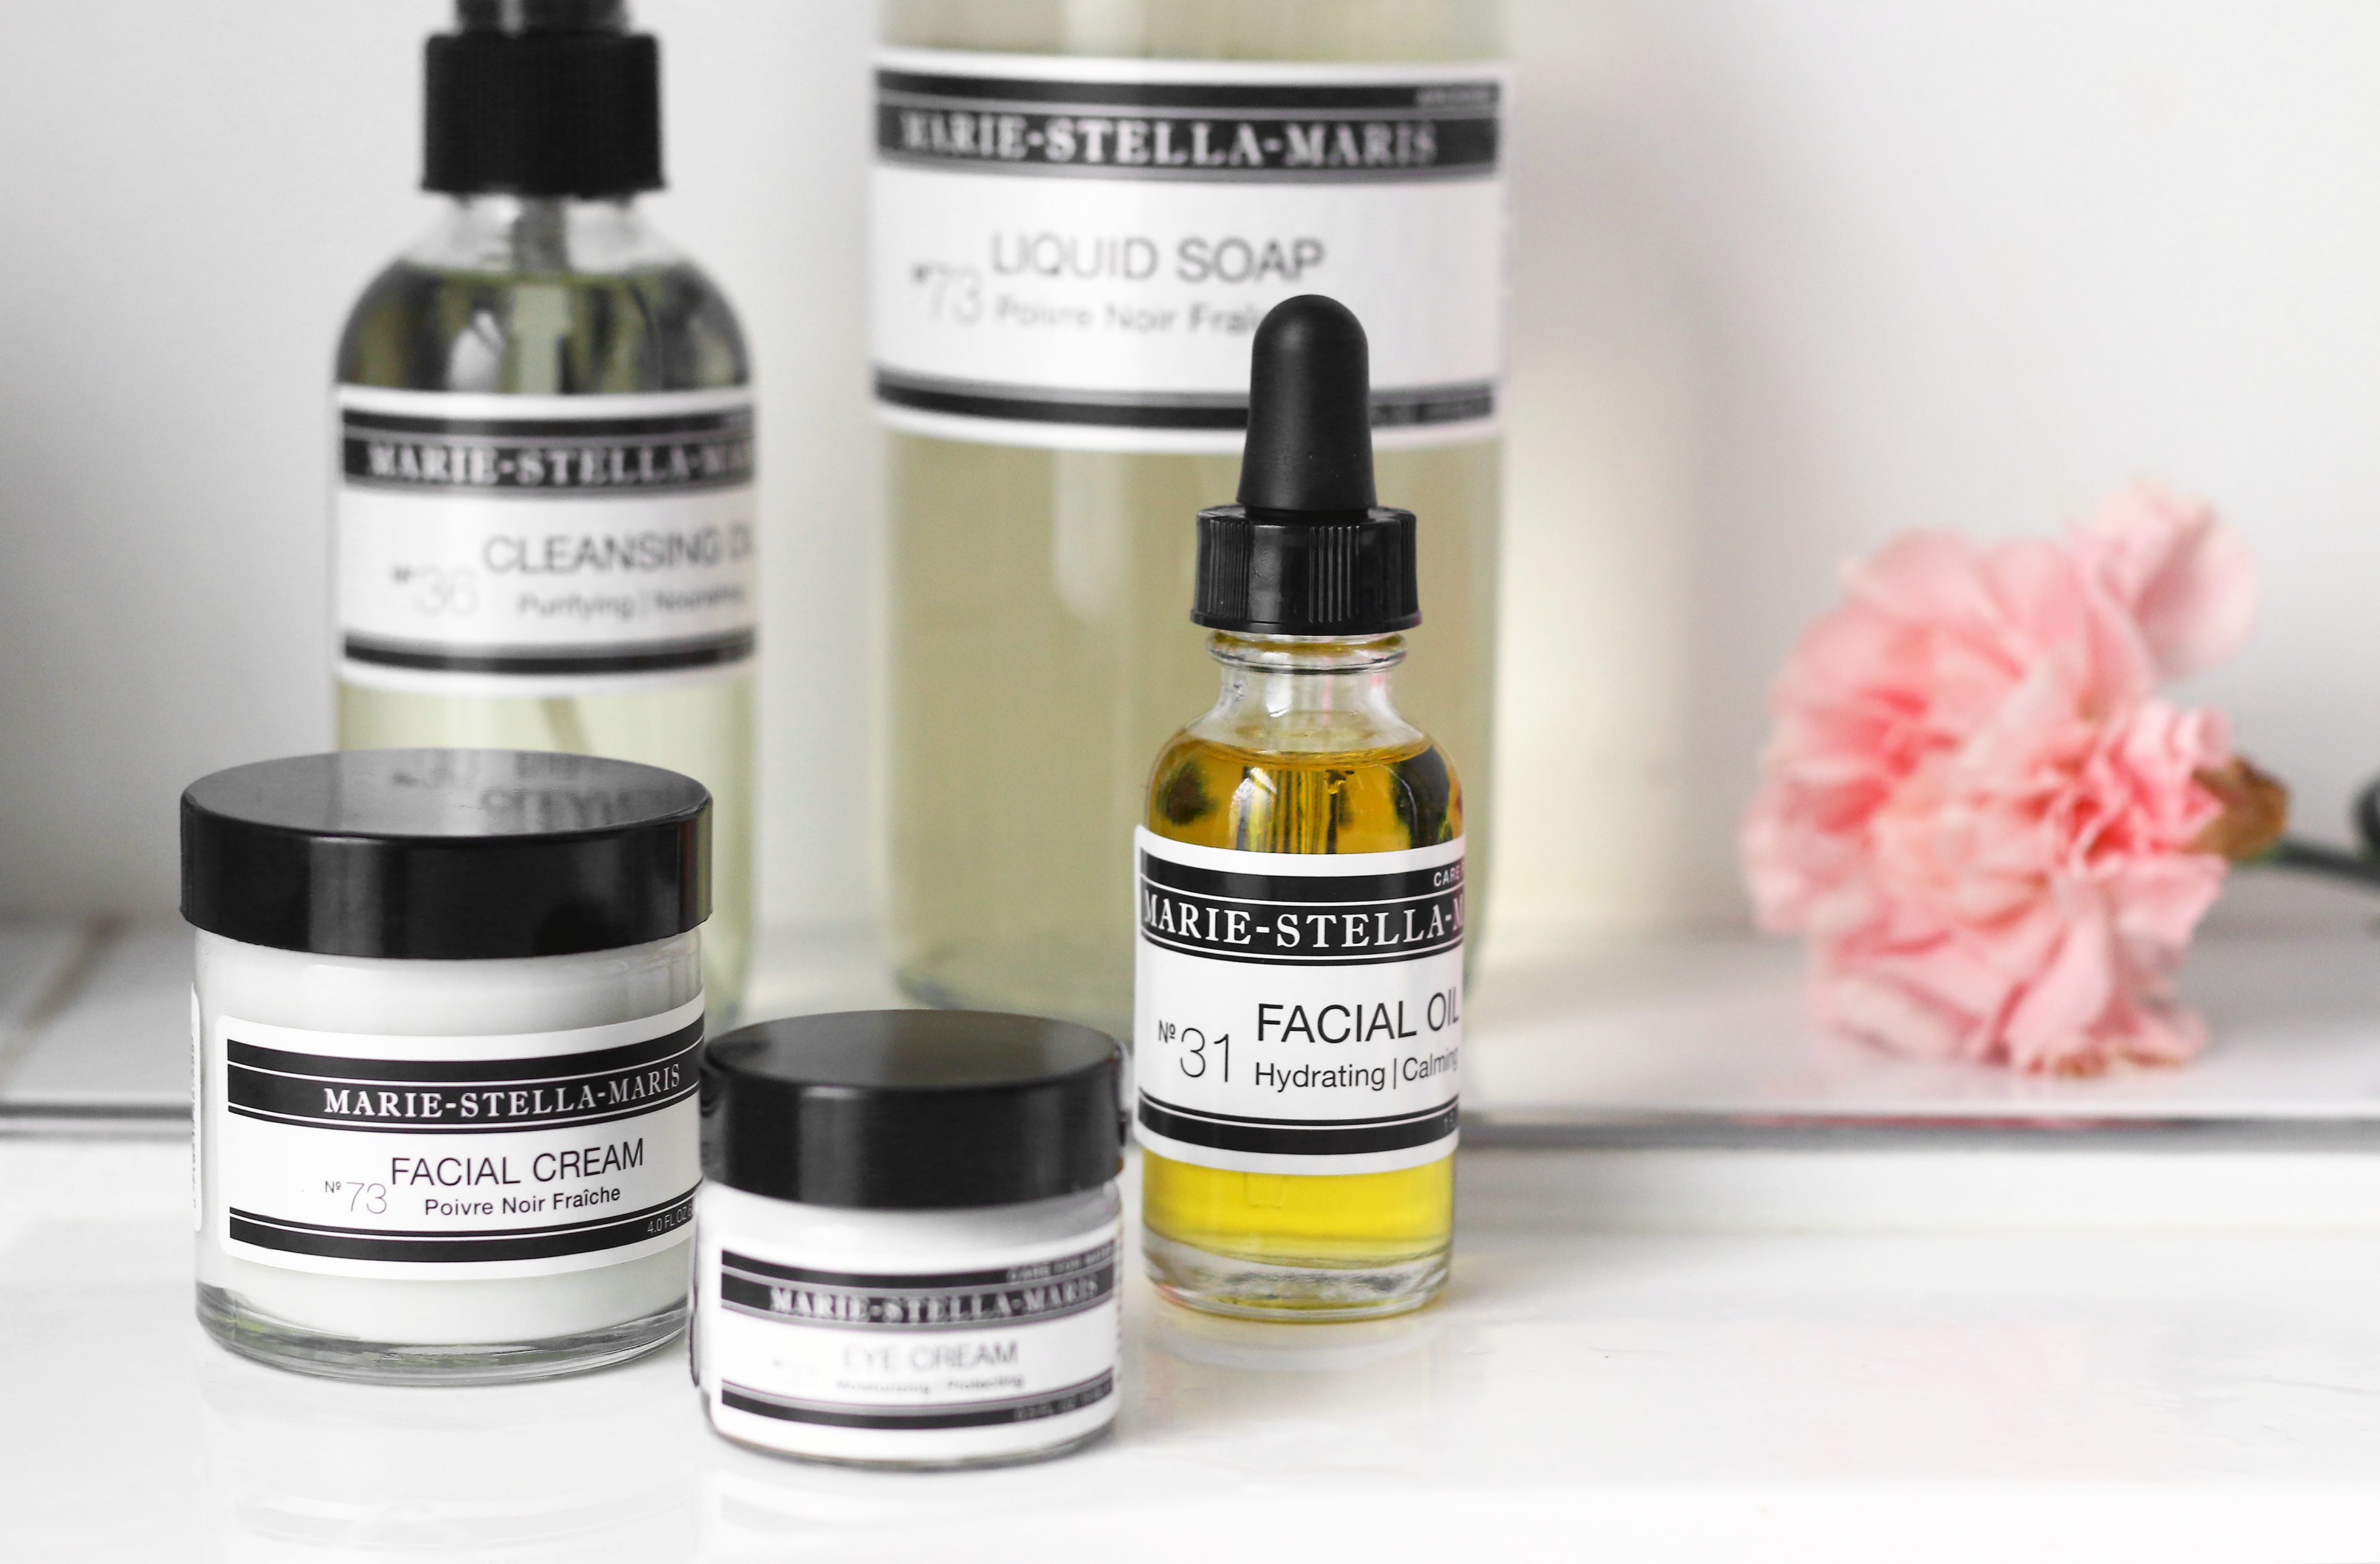 My favorite products from Marie-Stella-Maris